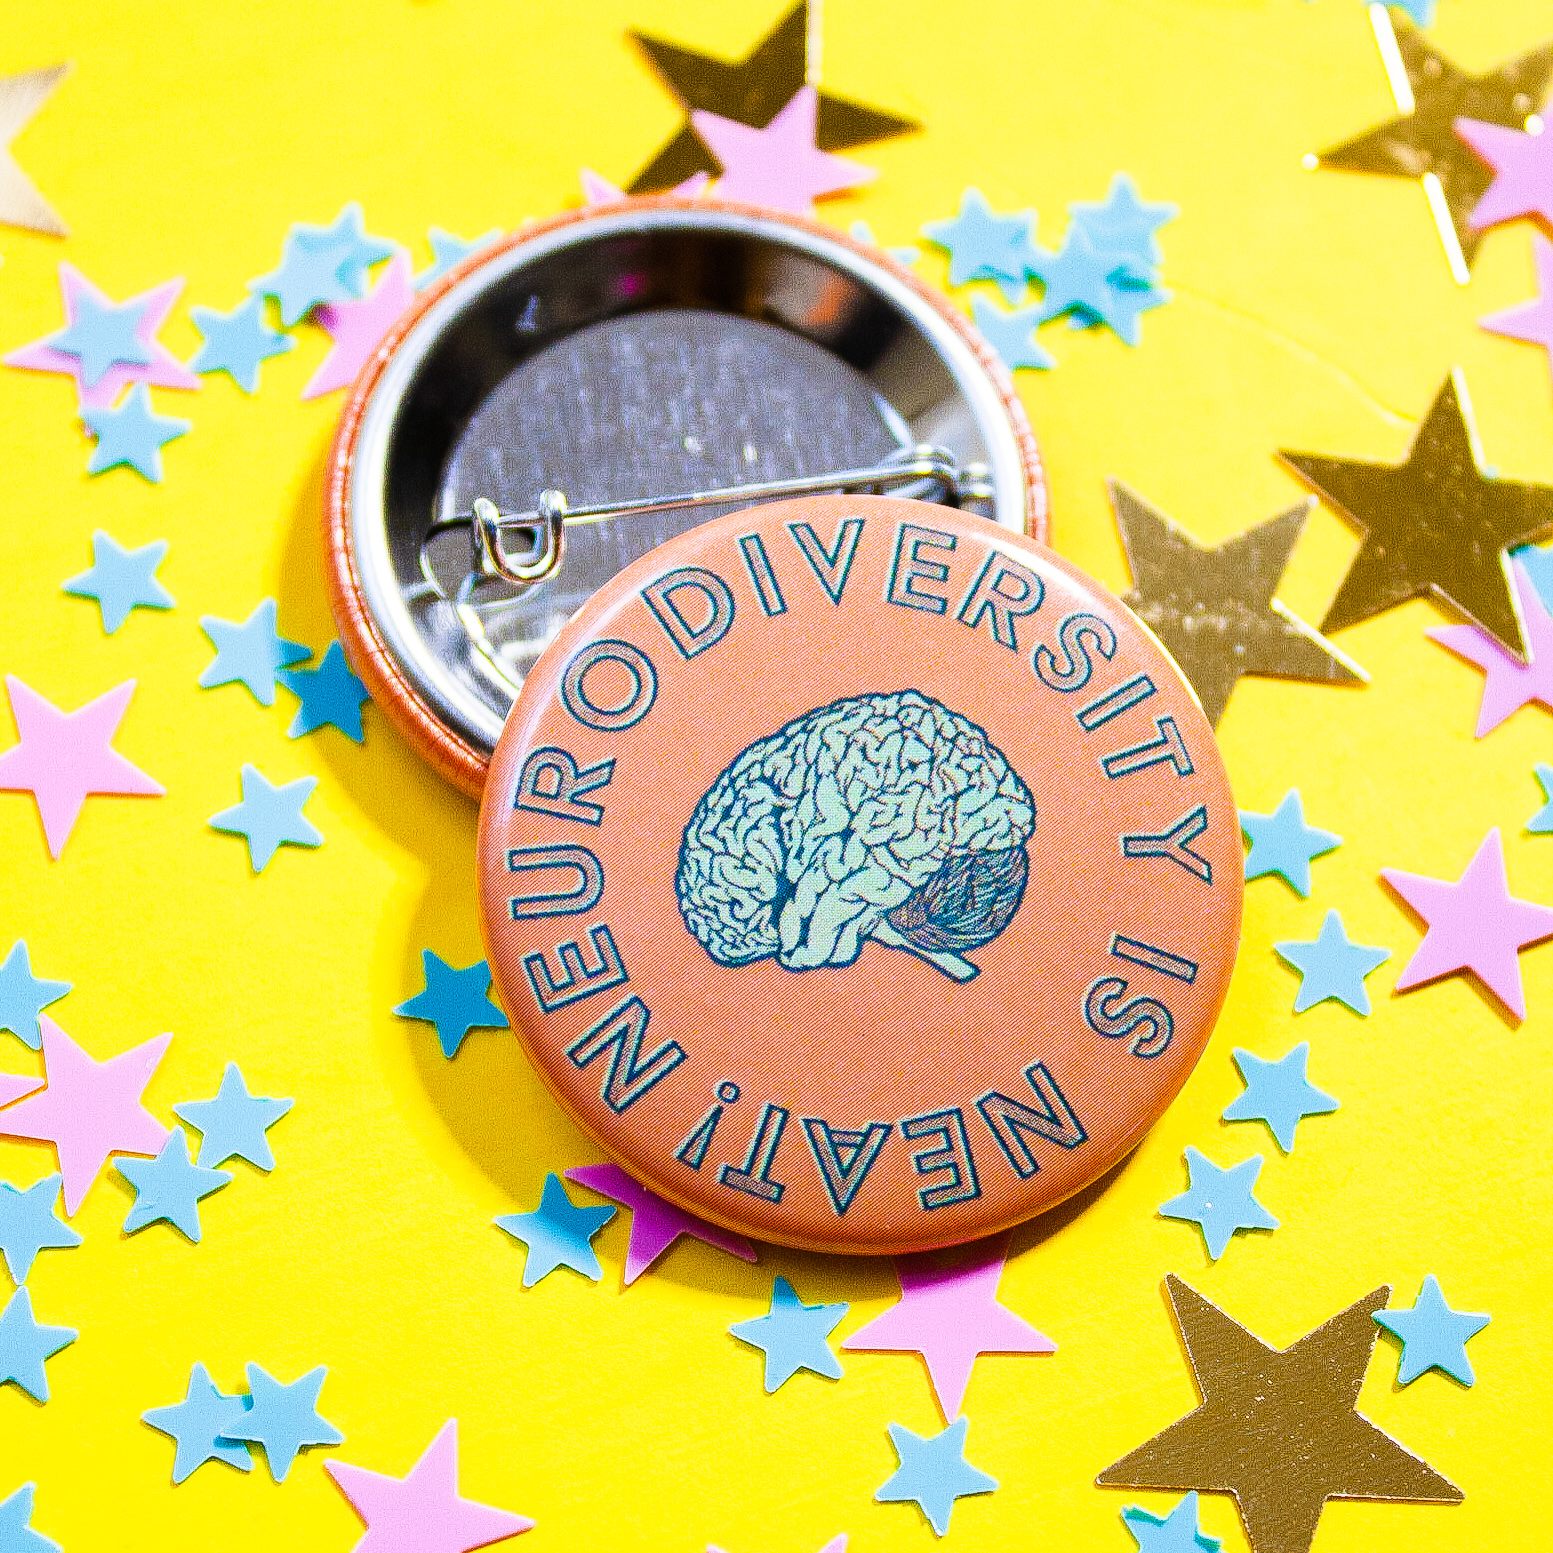 Neurodiversity is Neat! Button Pin   - $1 from every purchase of my neurodiversity art collection goes directly to the  Mental Health Association of Central Florida .